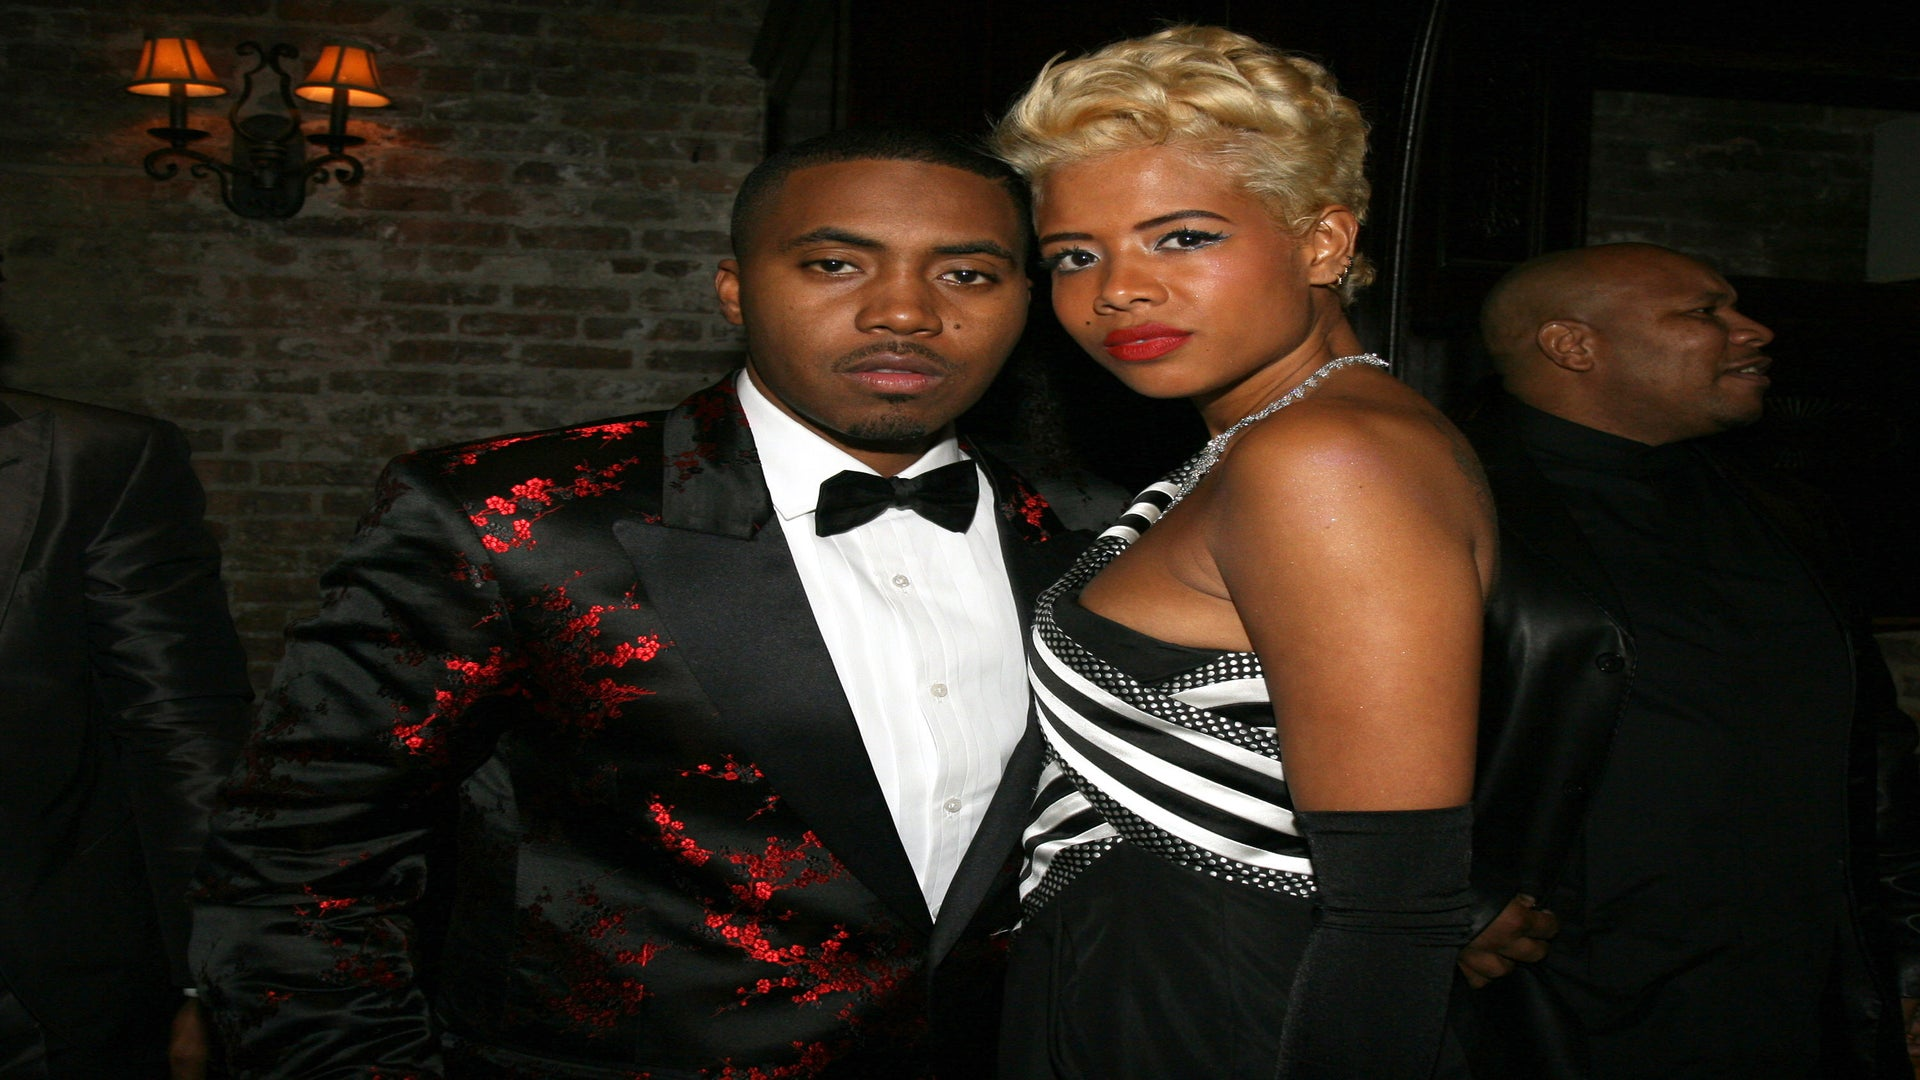 Kelis Explains Why She Opened Up About Her 'Violent' Marriage With Nas: 'I Have No More Patience To Give'